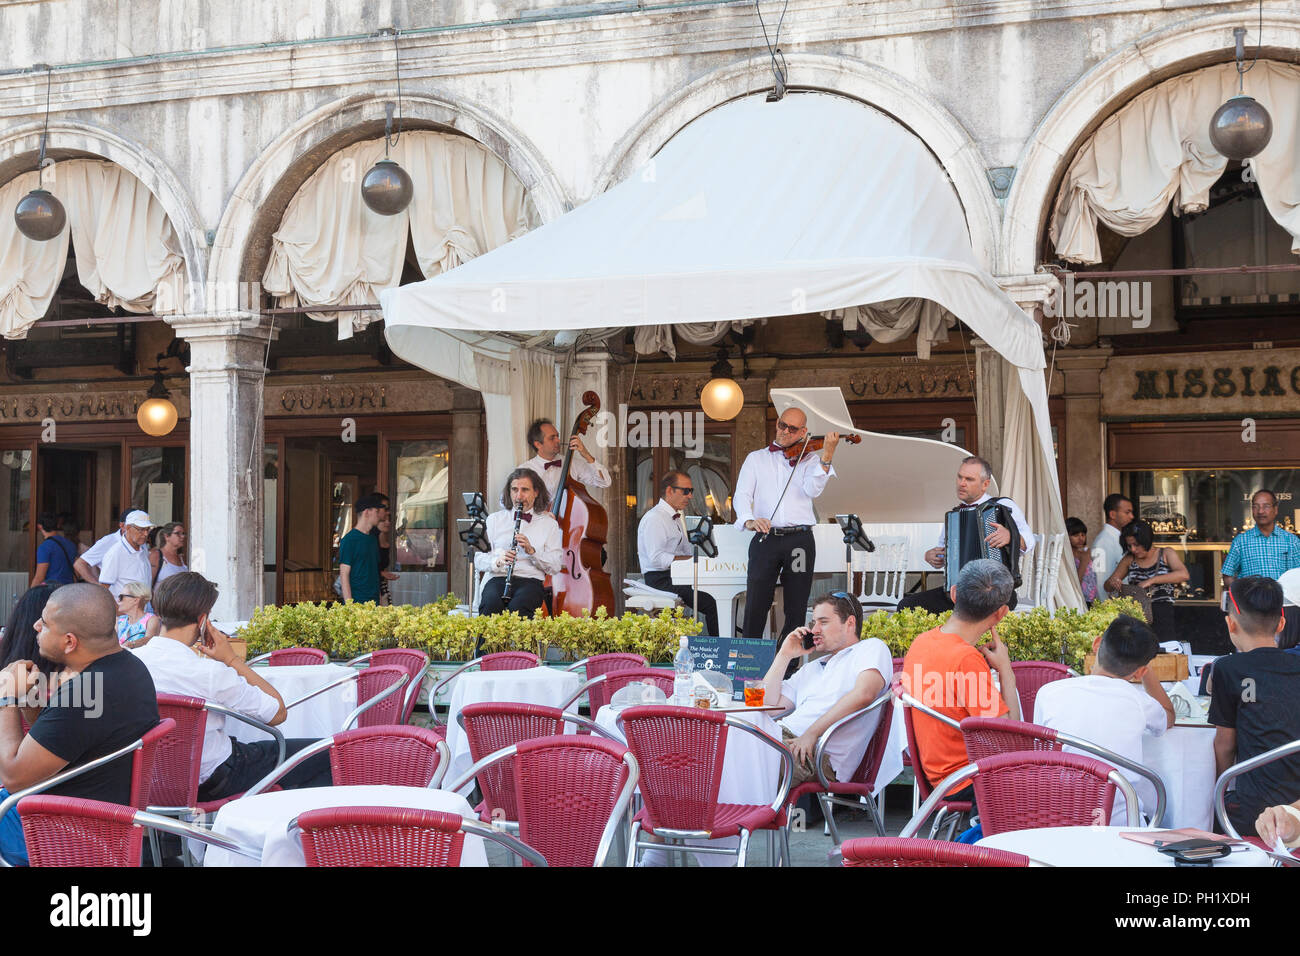 Live music performance at Caffe Ristorante Quadri, Piazza San Marco, Venice, Veneto, Italy with tourists seated  at outdoor tables enkoying the shade - Stock Image